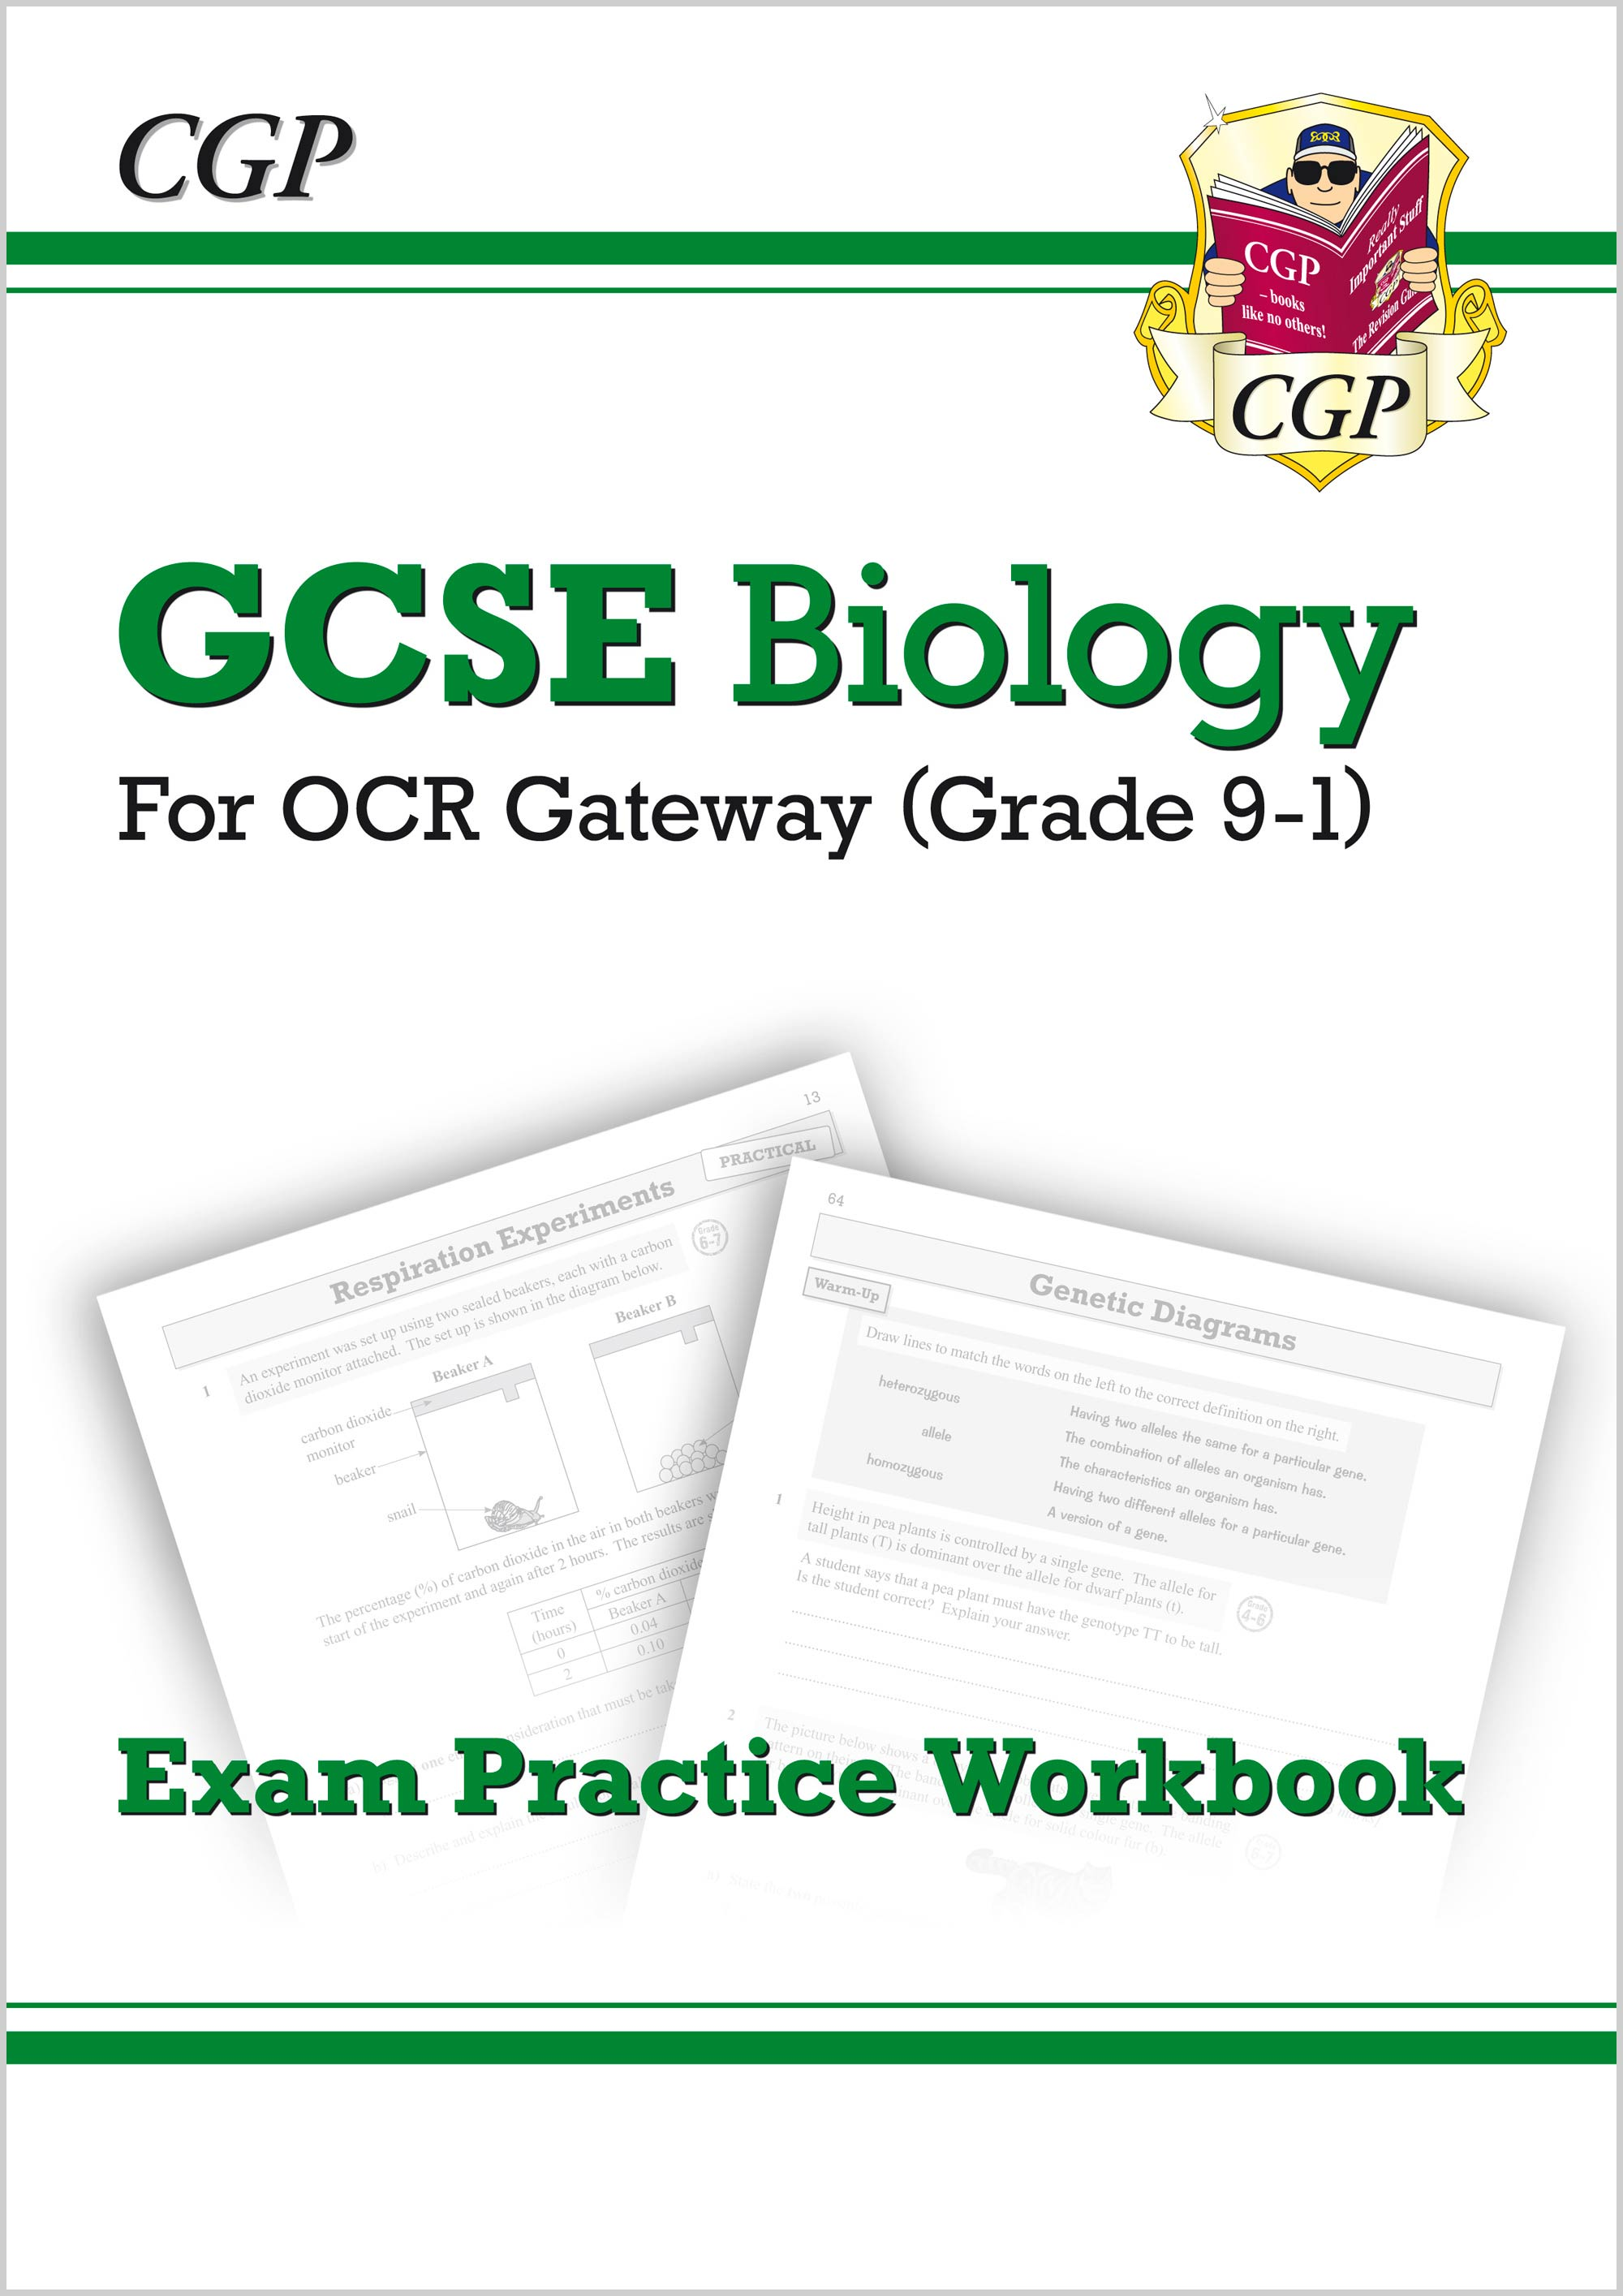 BRQ41 - New Grade 9-1 GCSE Biology: OCR Gateway Exam Practice Workbook